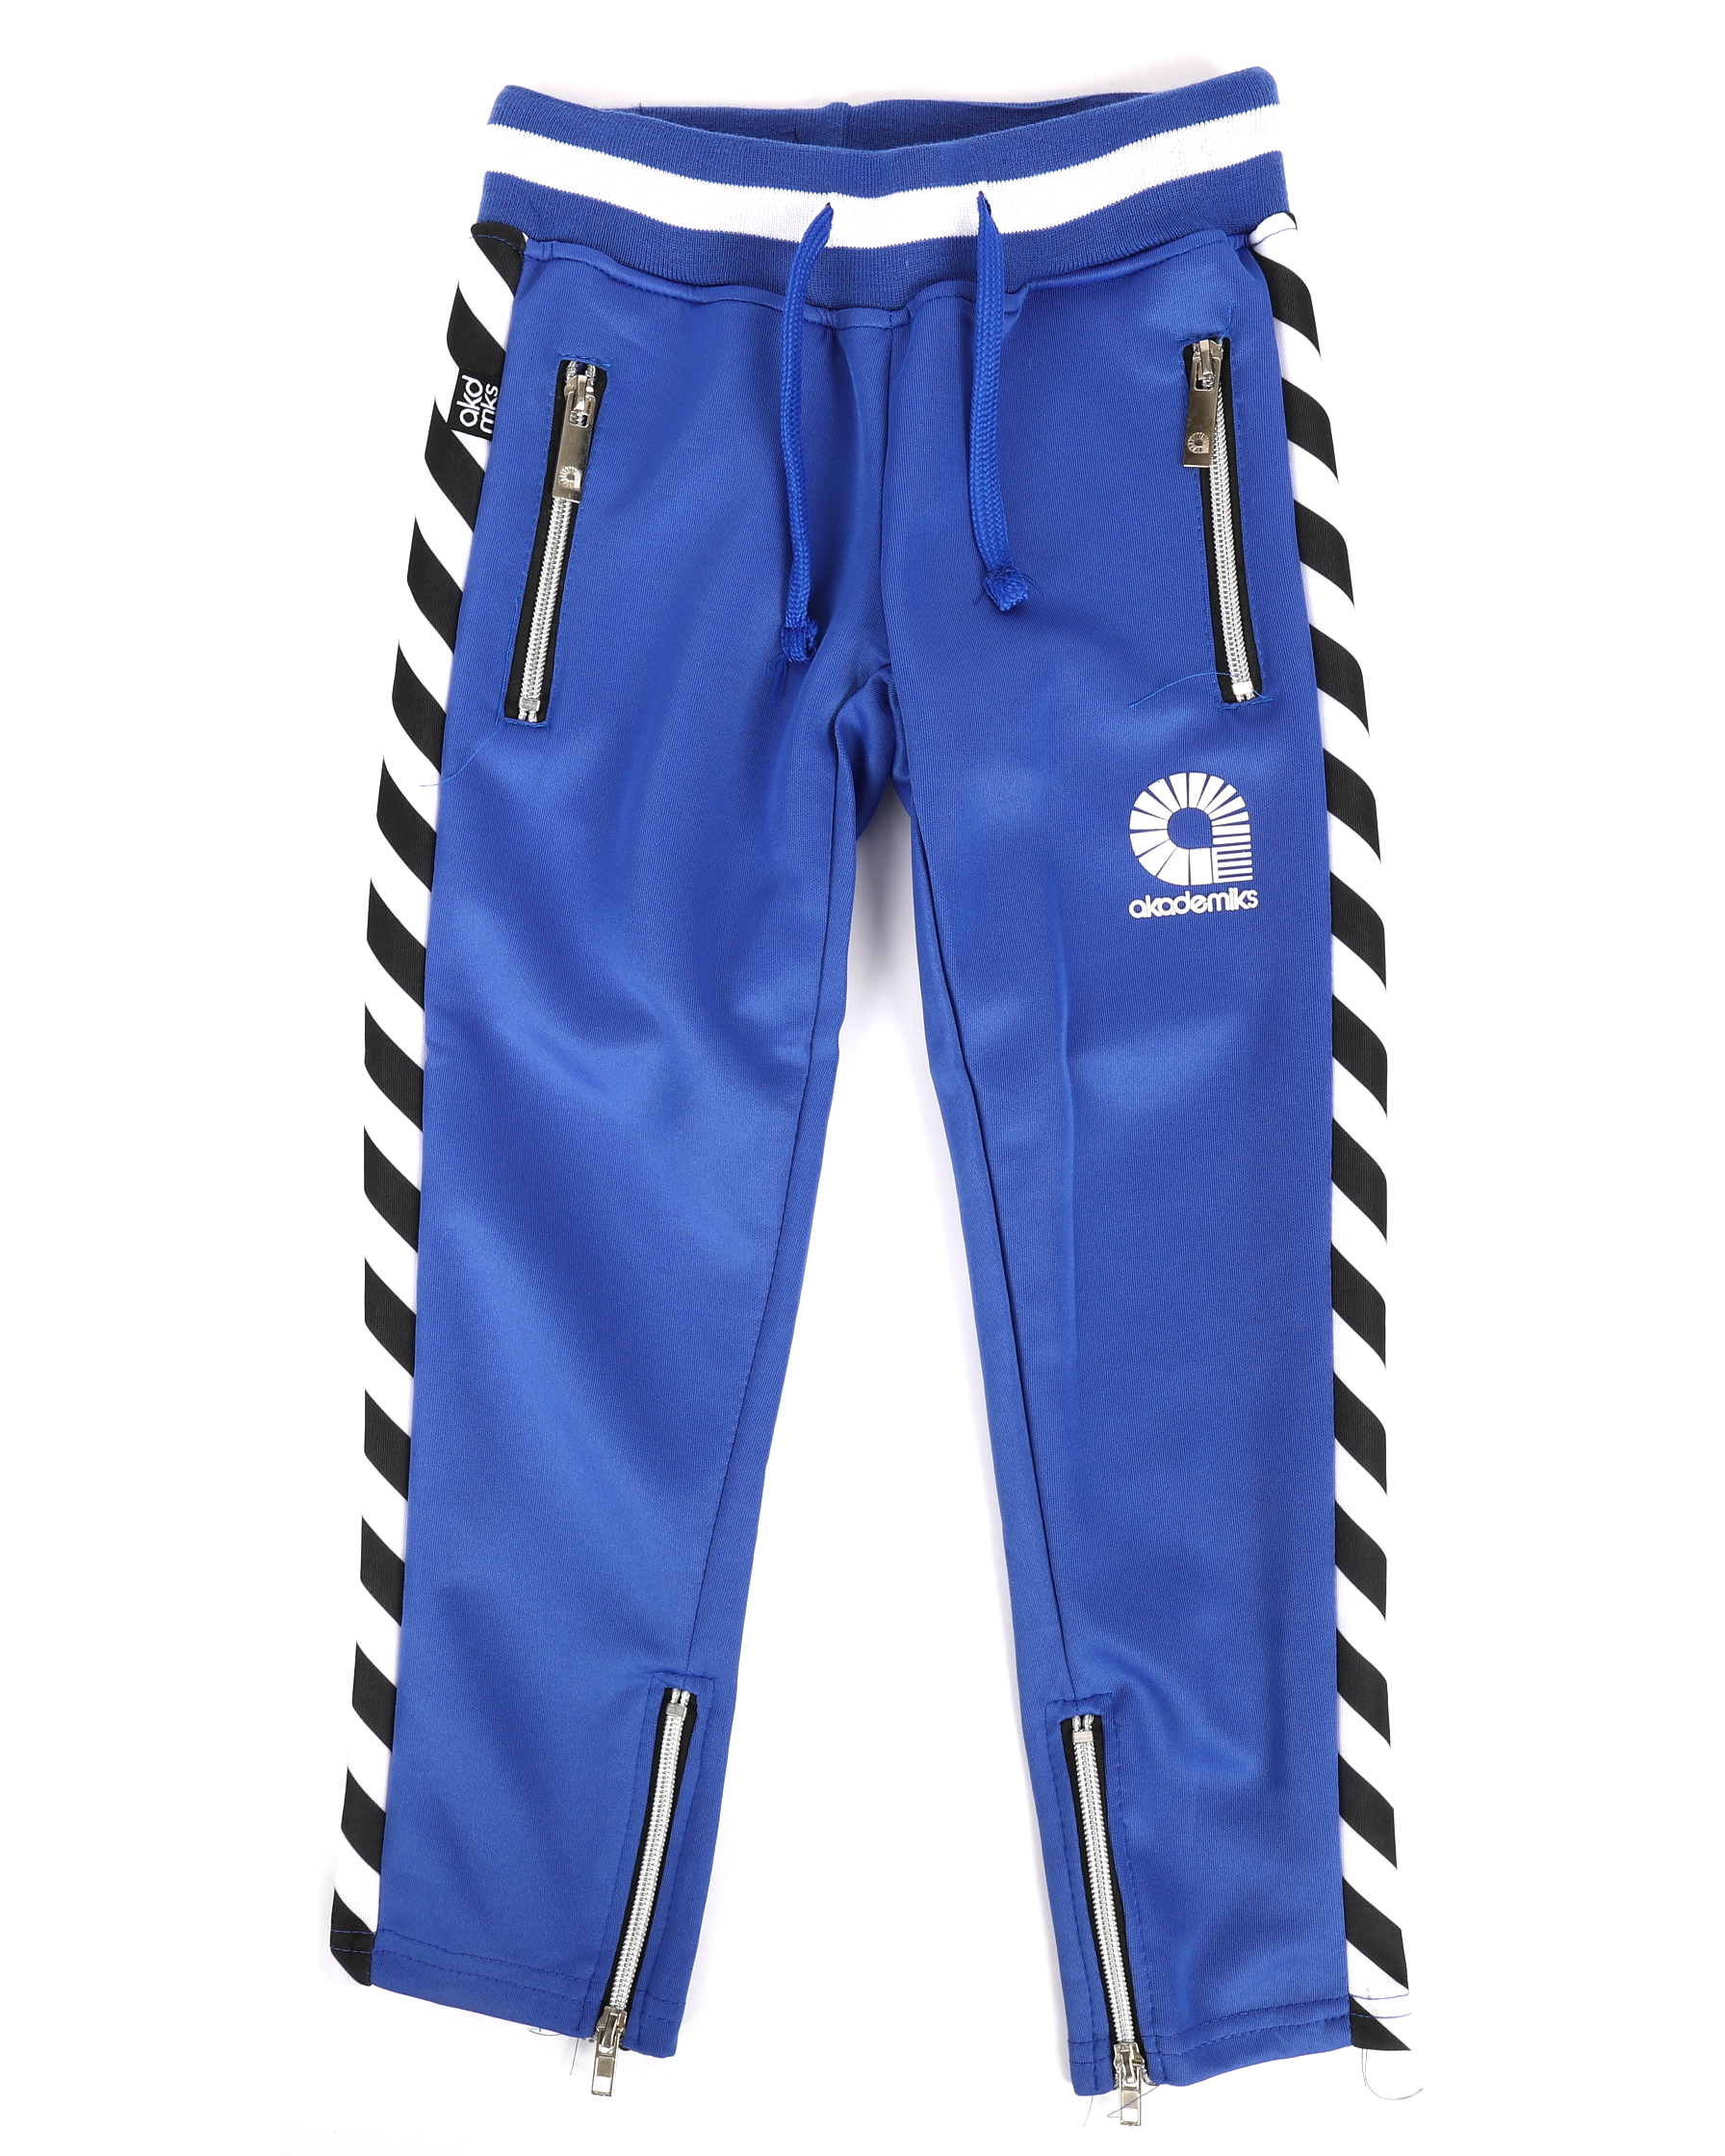 3DmaxTees I Wii Be There for You Girl Autumn Winter Long Trousers Casual Baggy Sweatpants